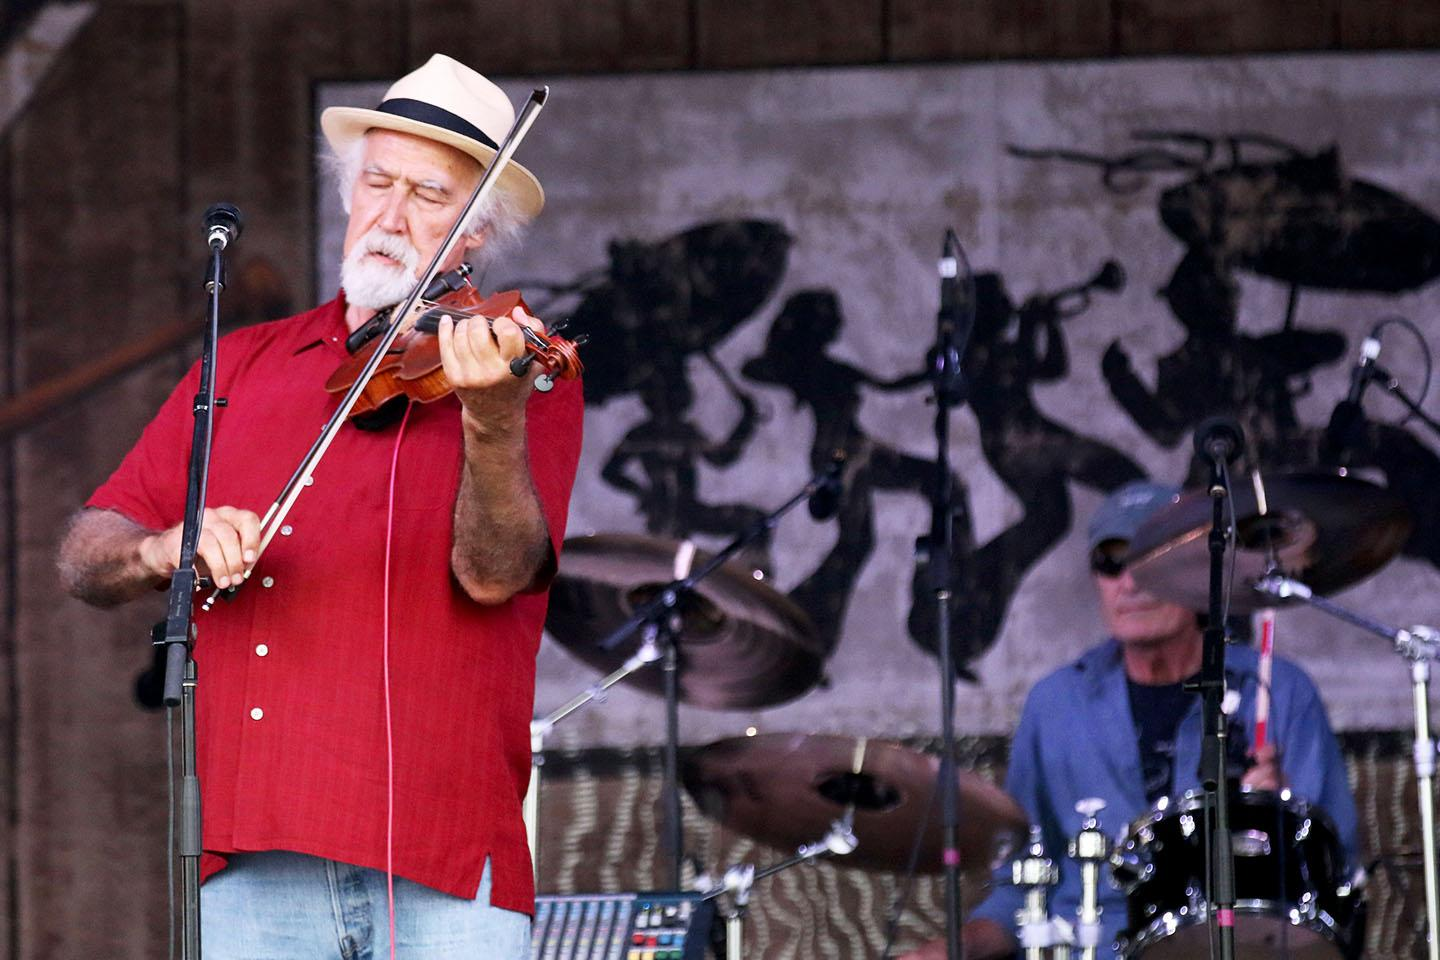 Michael Doucet plays his violin at the Fais Do-Do stage at the 2015 New Orleans Jazz and Heritage Festival.